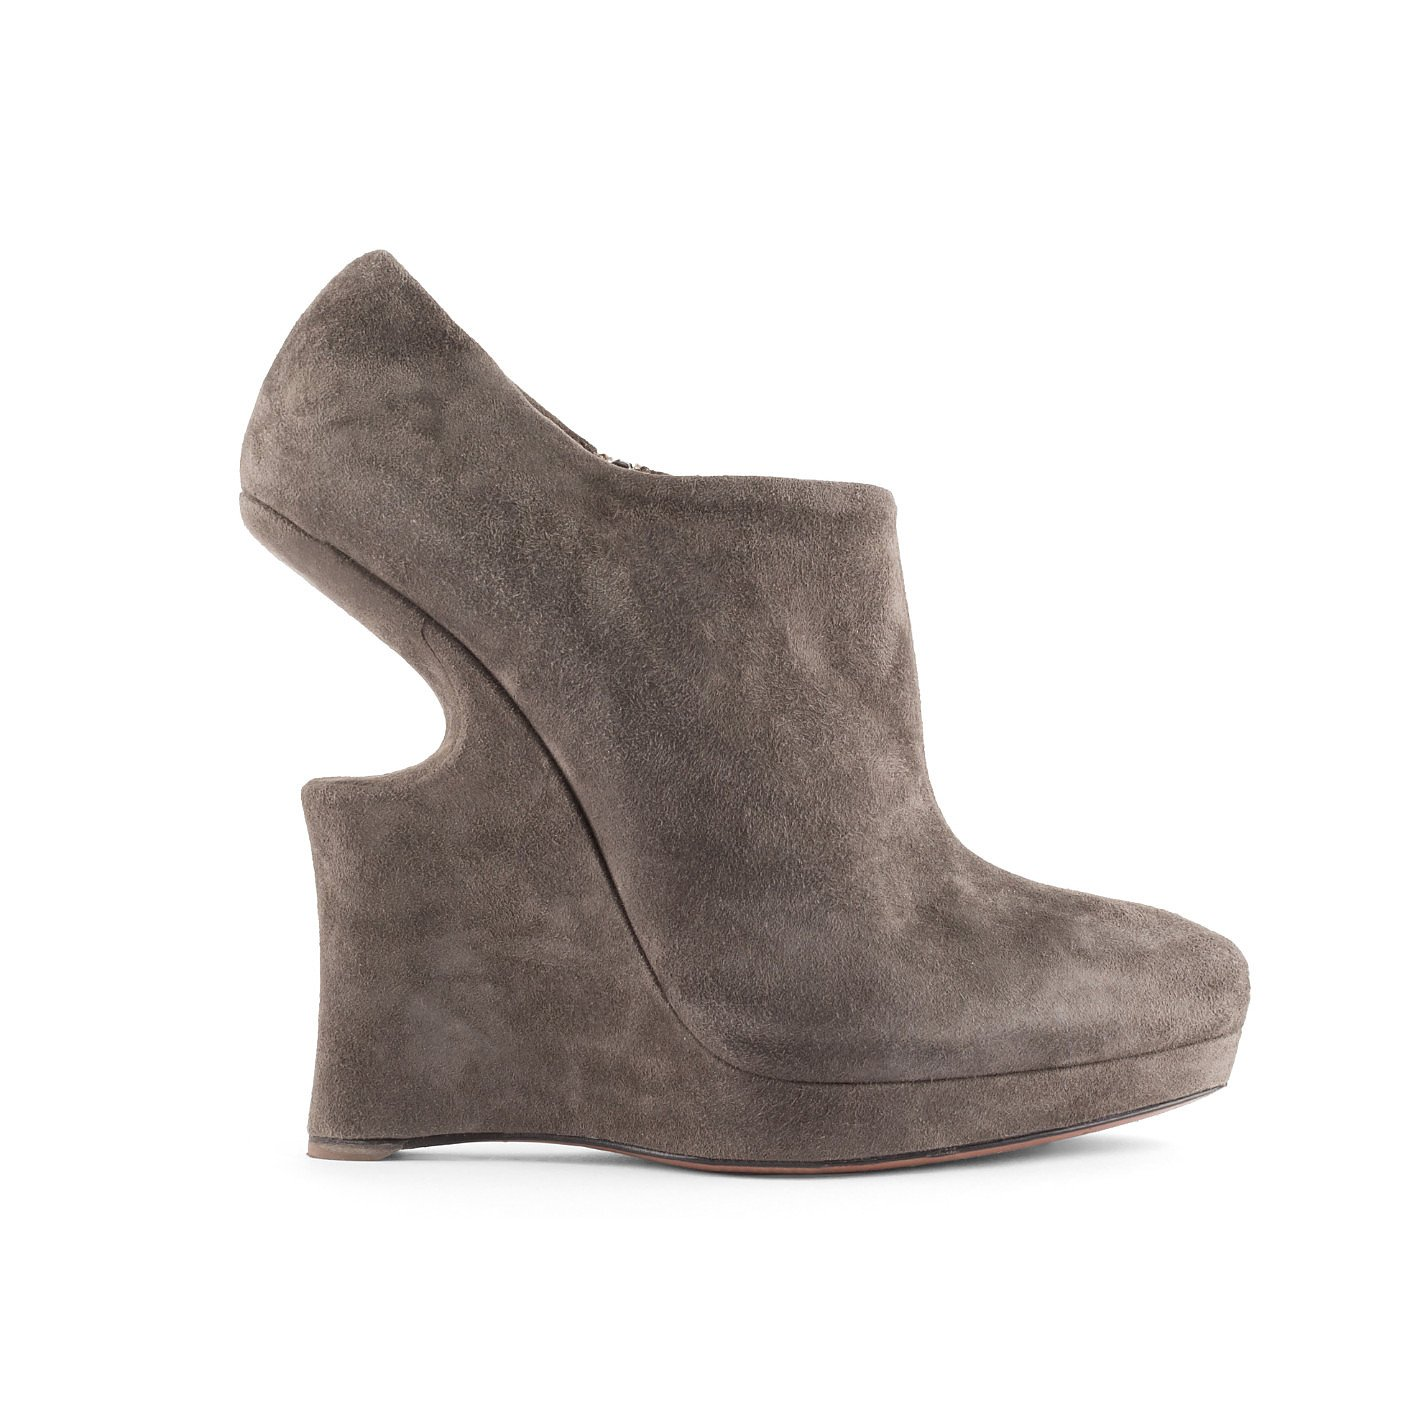 Alaïa Sculptured Platform Ankle Boot